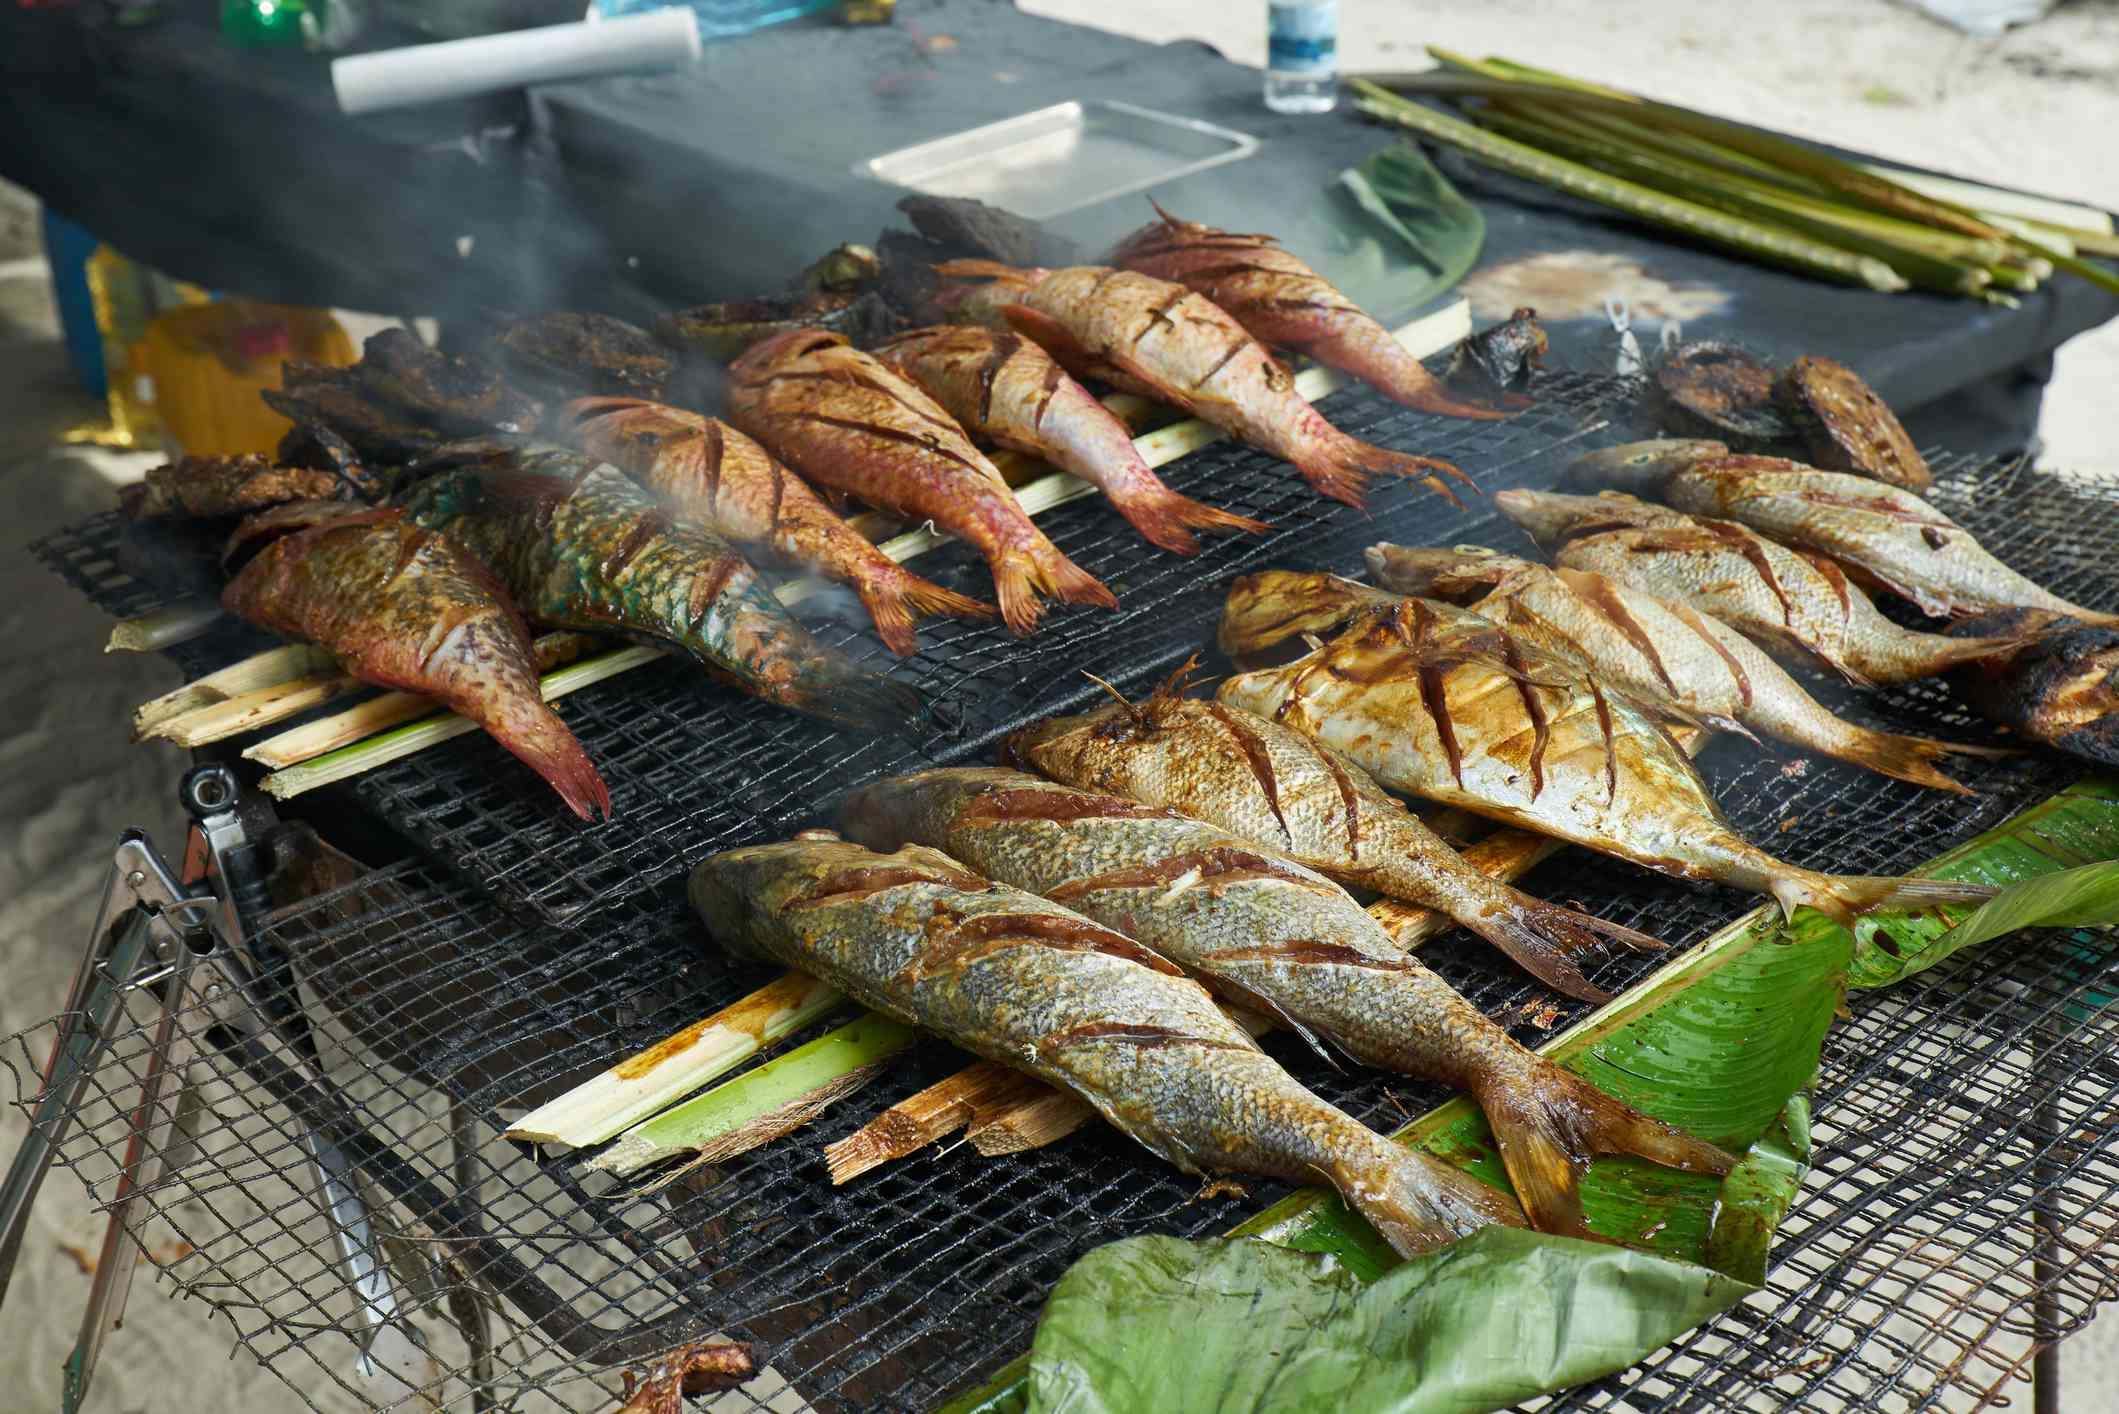 Grilled fresh seafood in local market, Mahé - Seychelles Island -